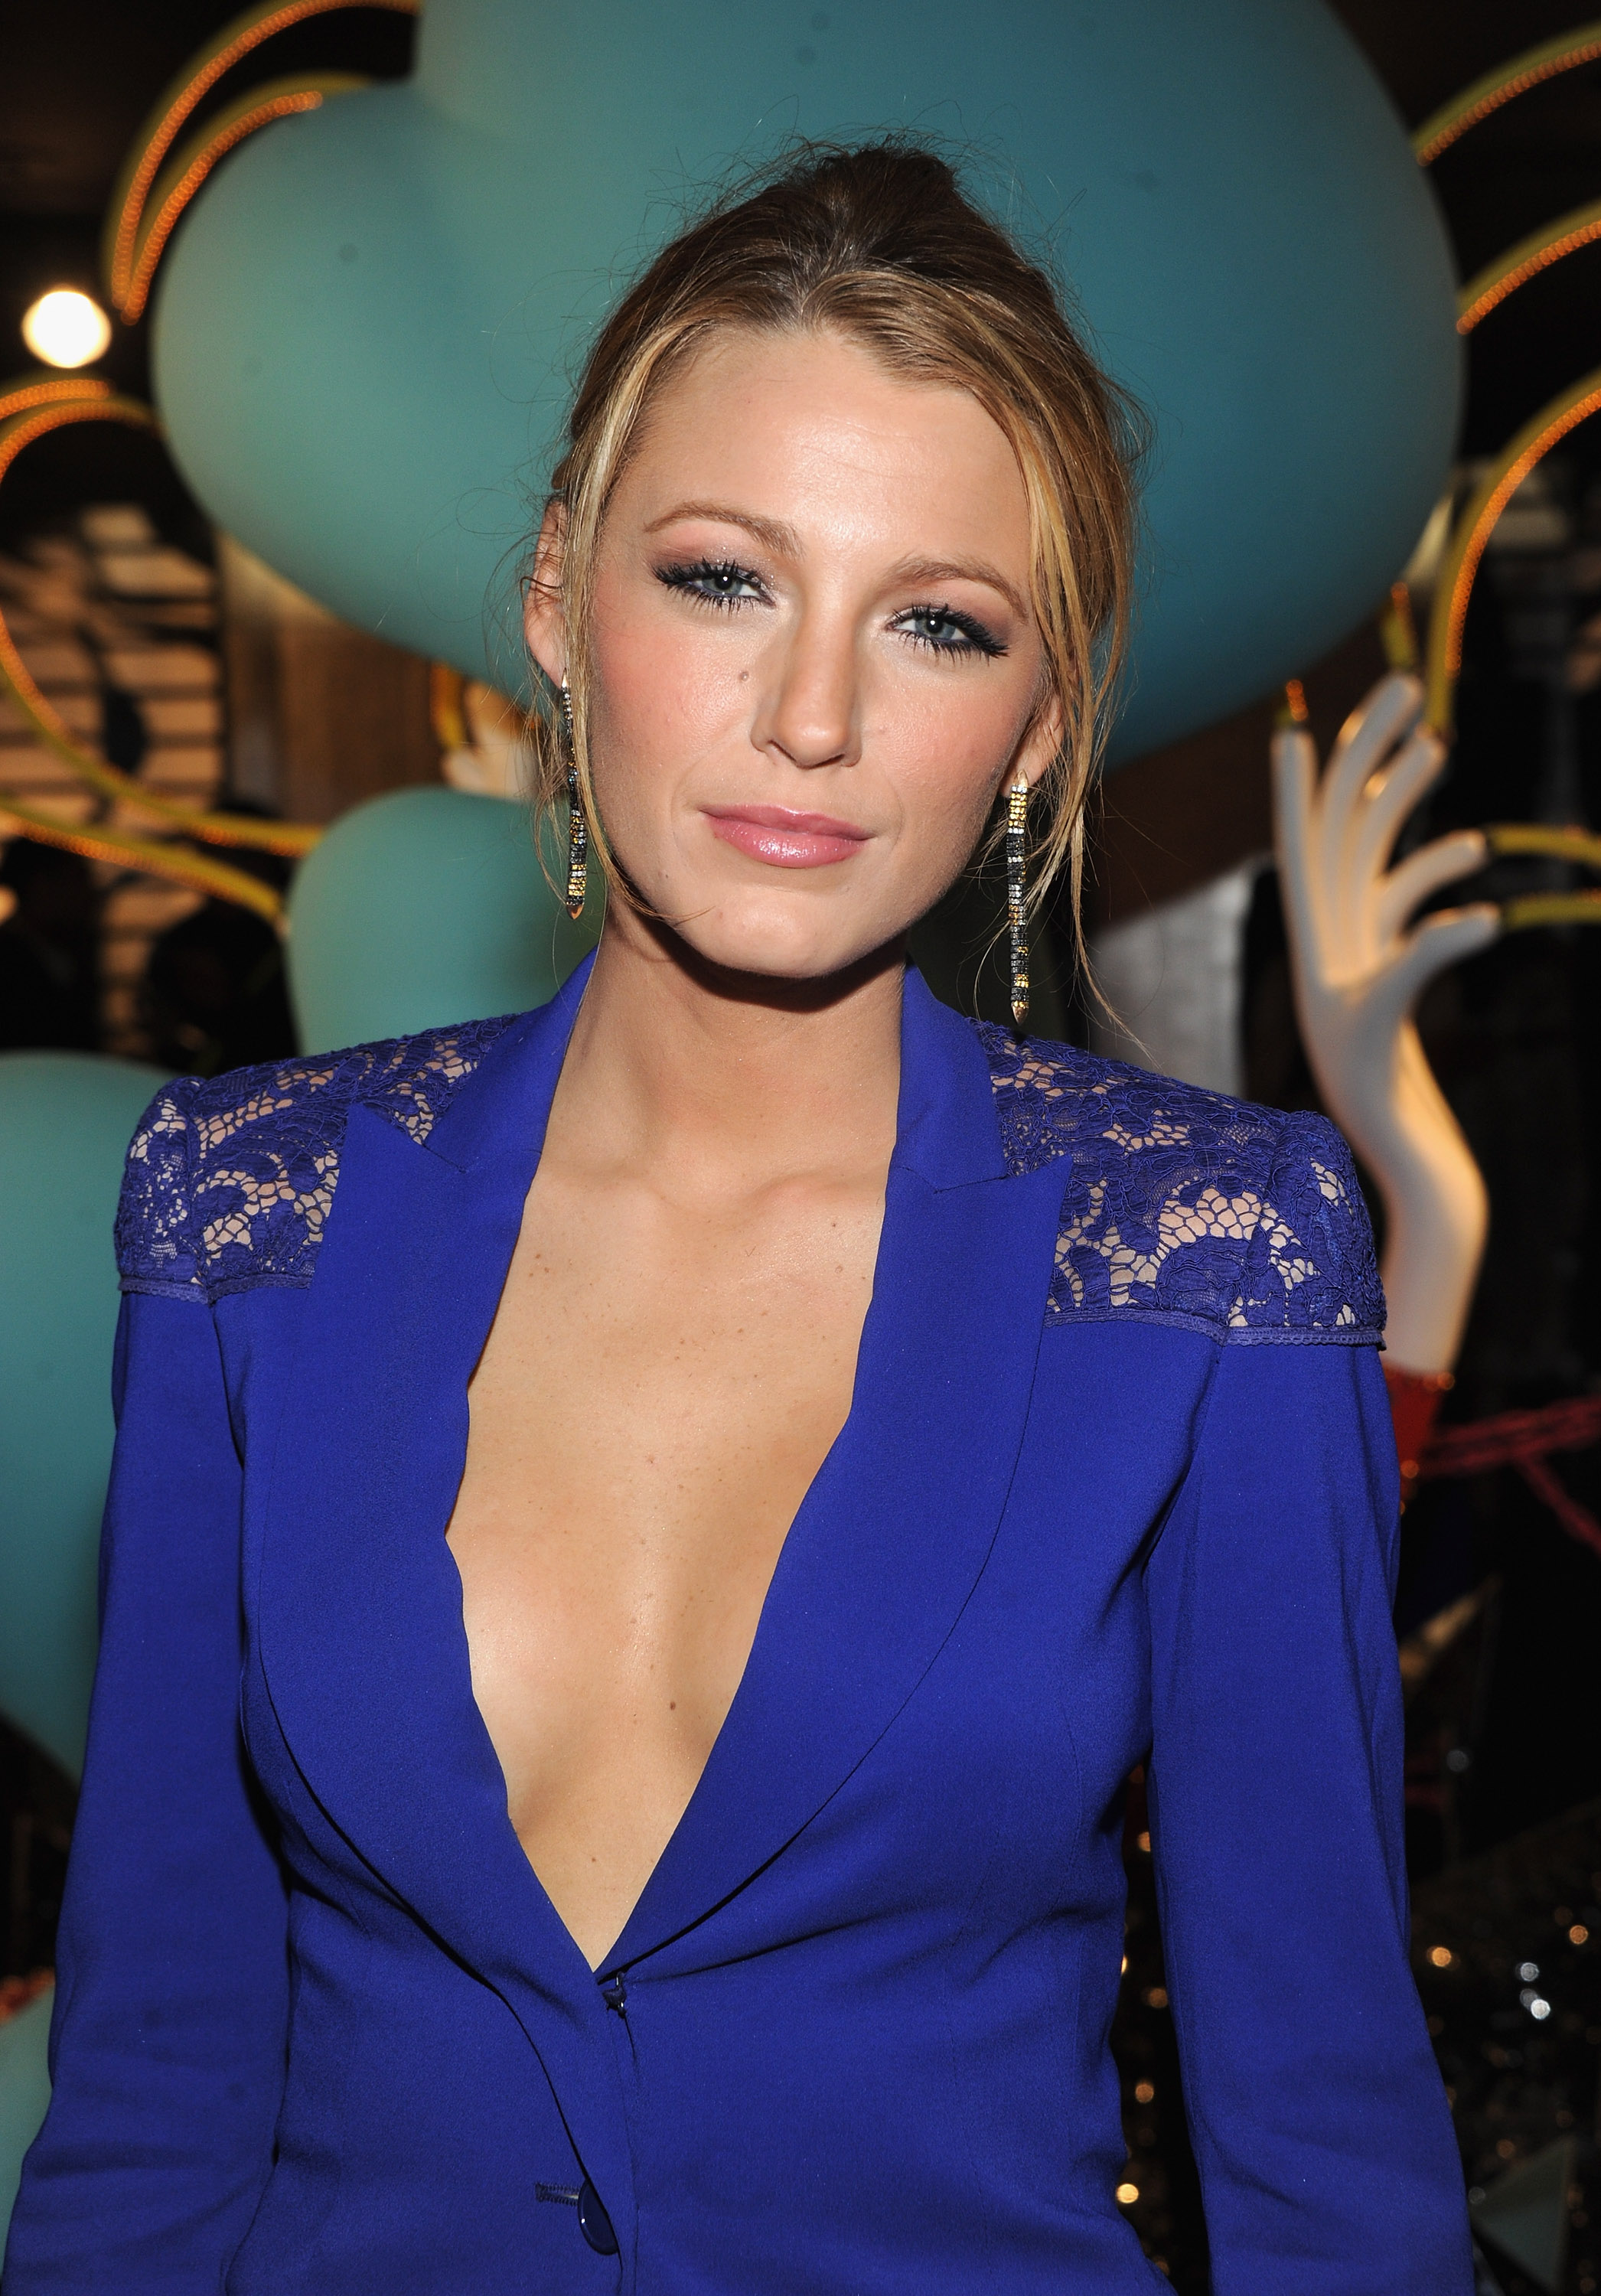 Cleavage Blake Lively naked (86 foto and video), Sexy, Paparazzi, Twitter, in bikini 2017